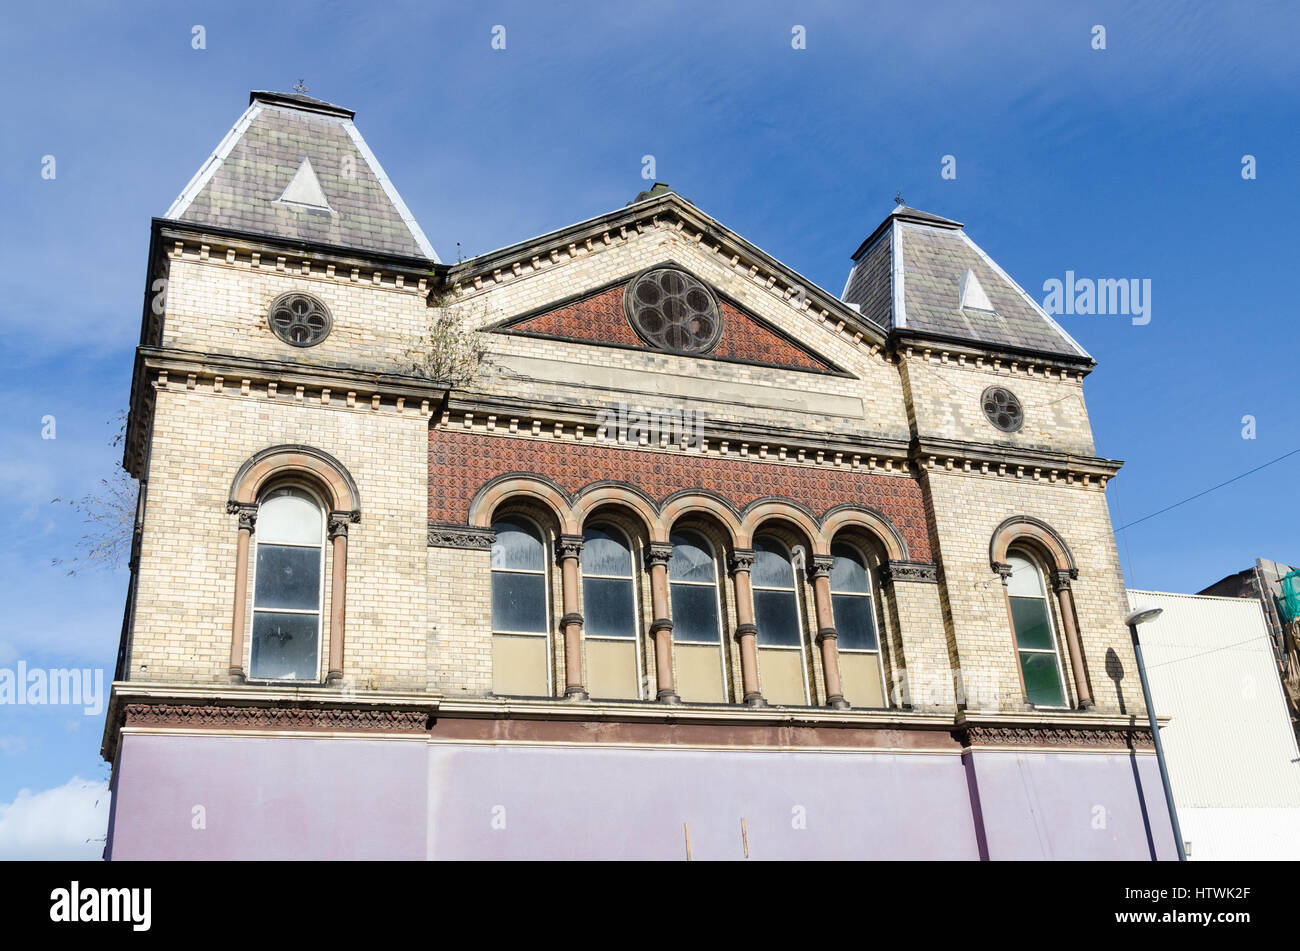 The former Primitive Methodist chapel building on St Peter's Churchyard in Derby - Stock Image